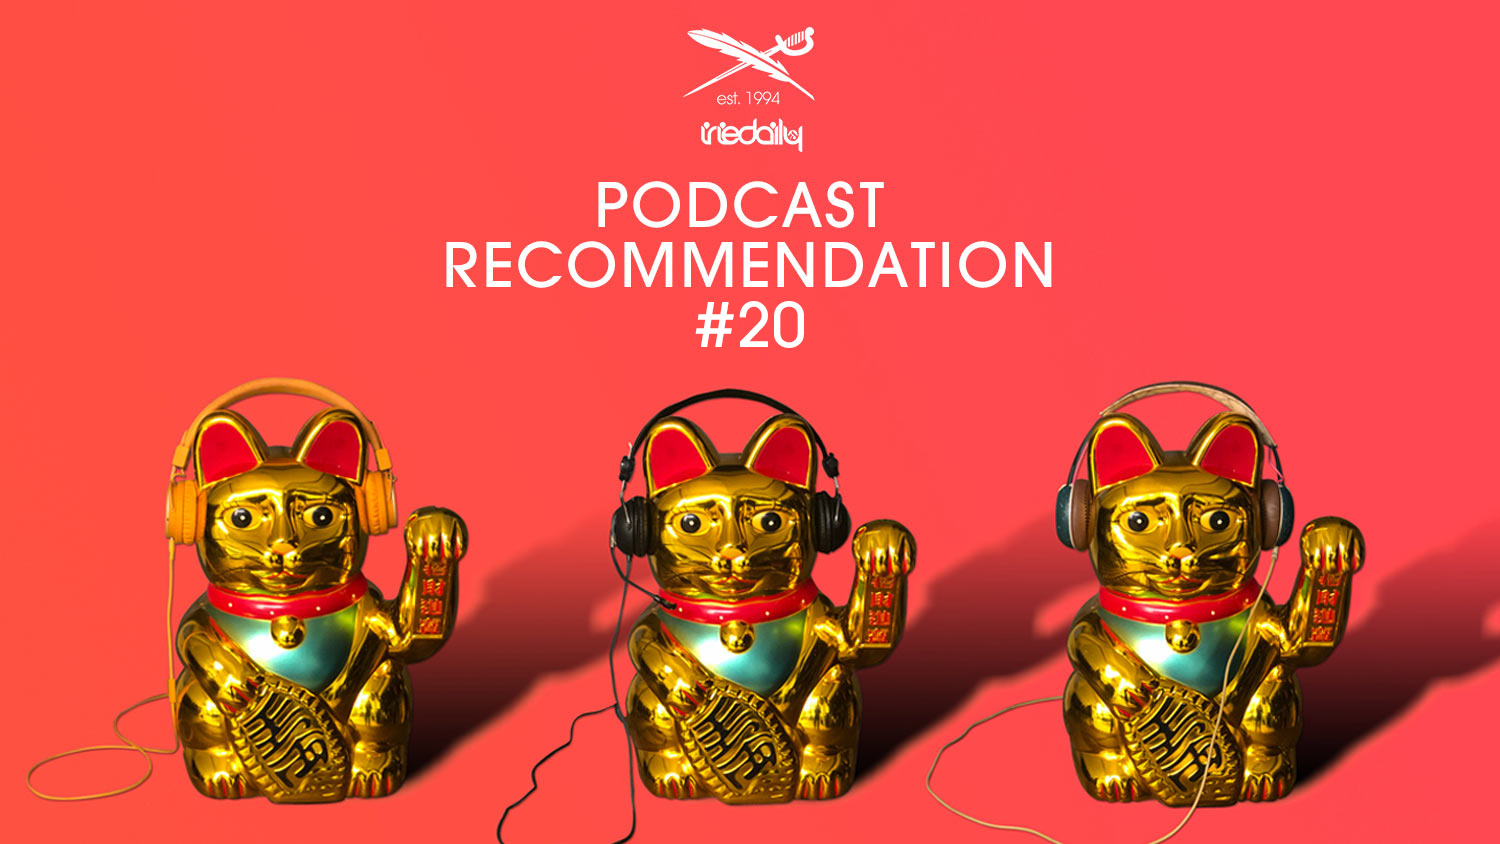 IRIEDAILY Podcast Recommendation #20